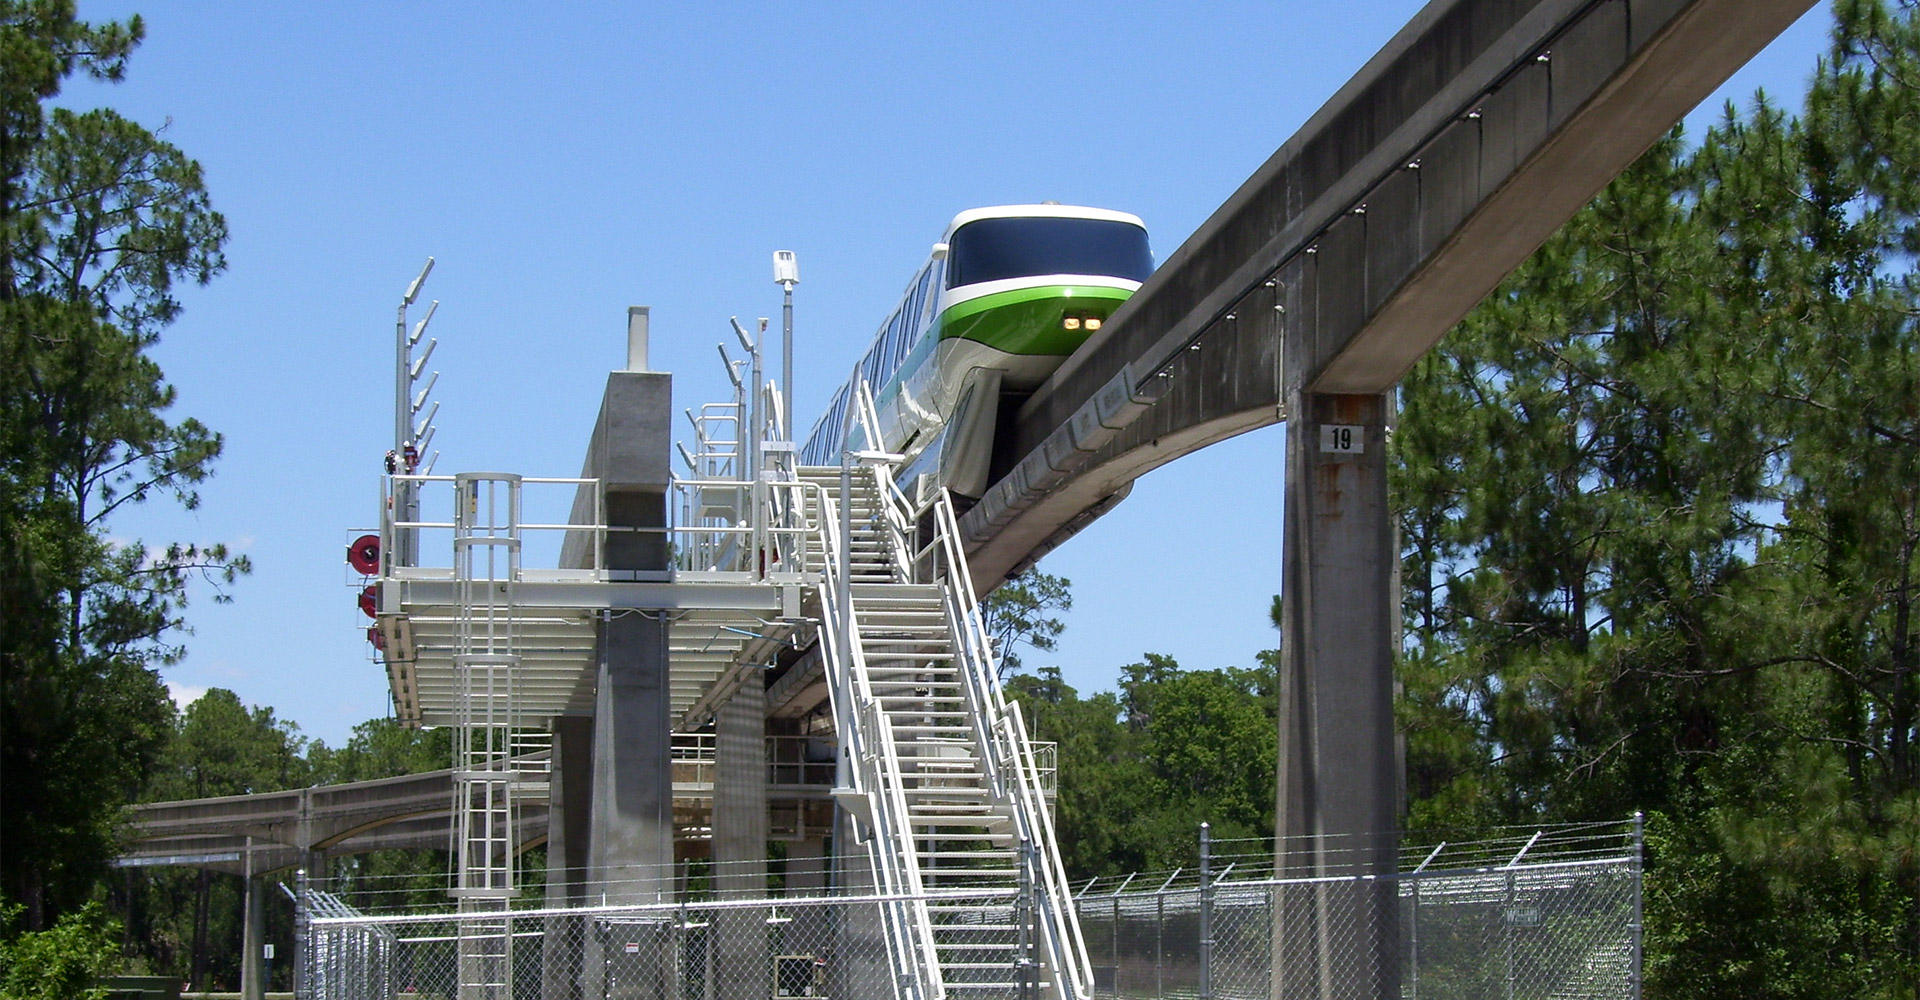 View of the Disney Monorail.